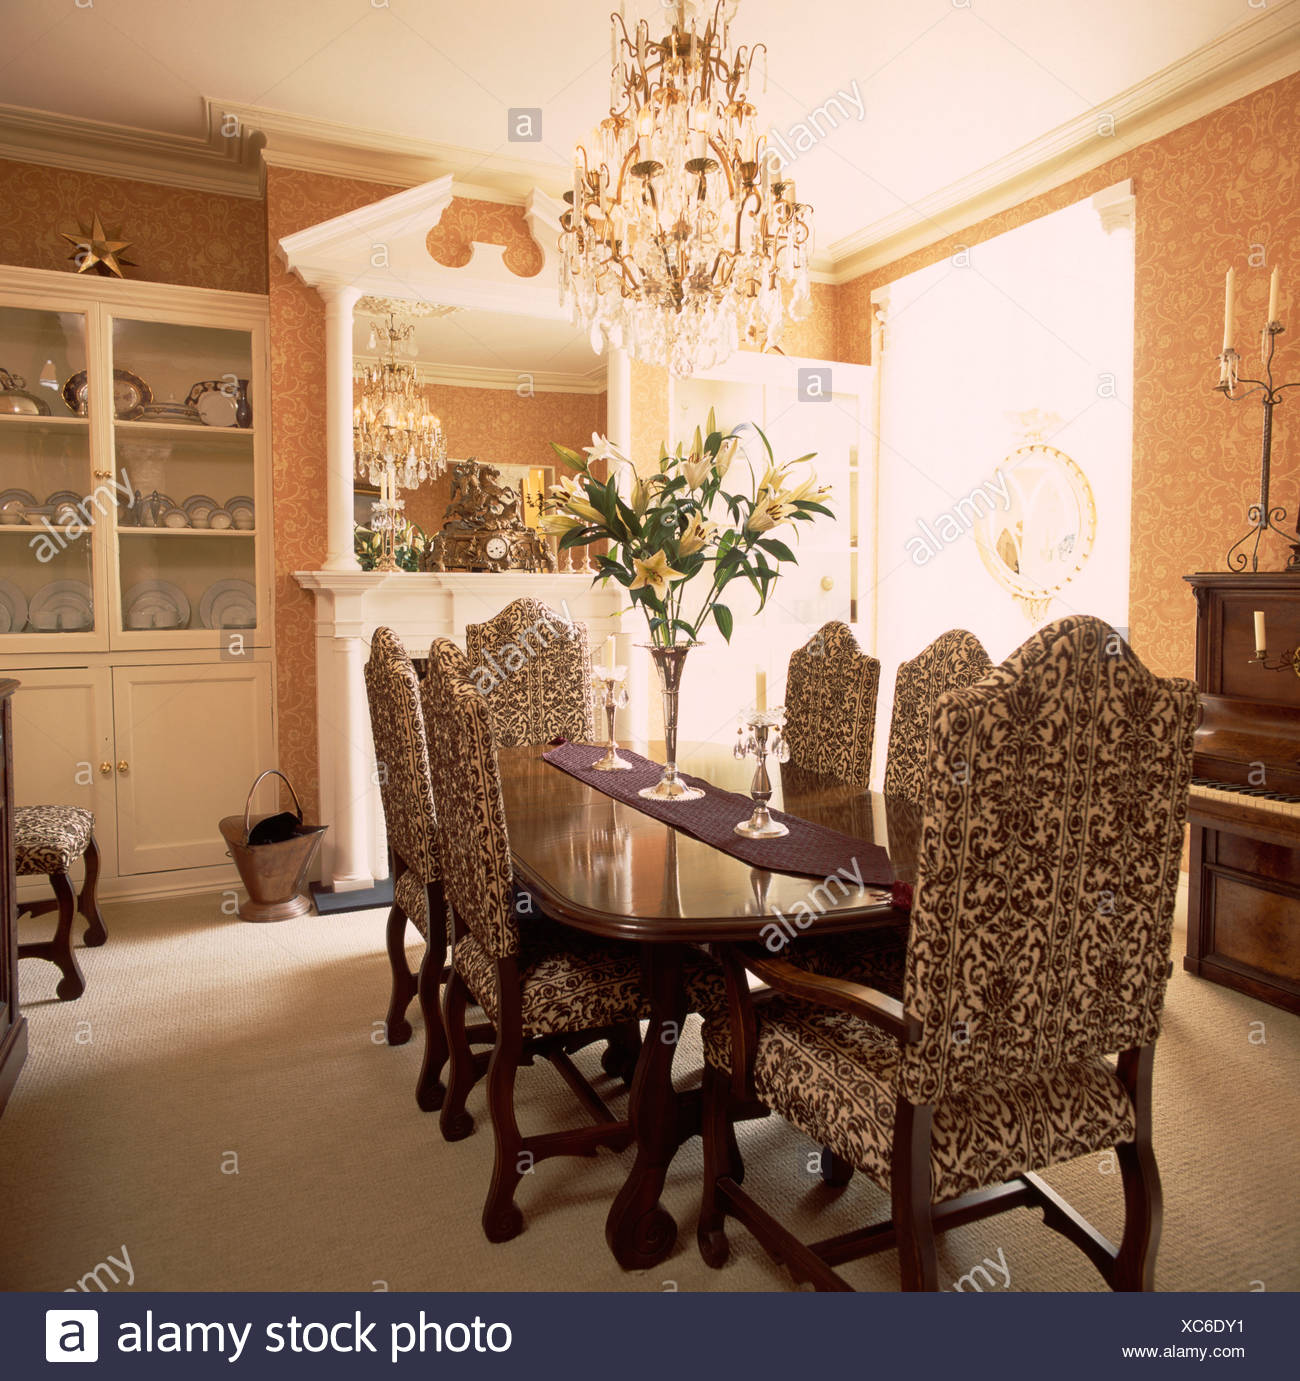 Damask Dining Chair Chandelier Above Tapestry Upholstered Chairs And Mahogany Table In